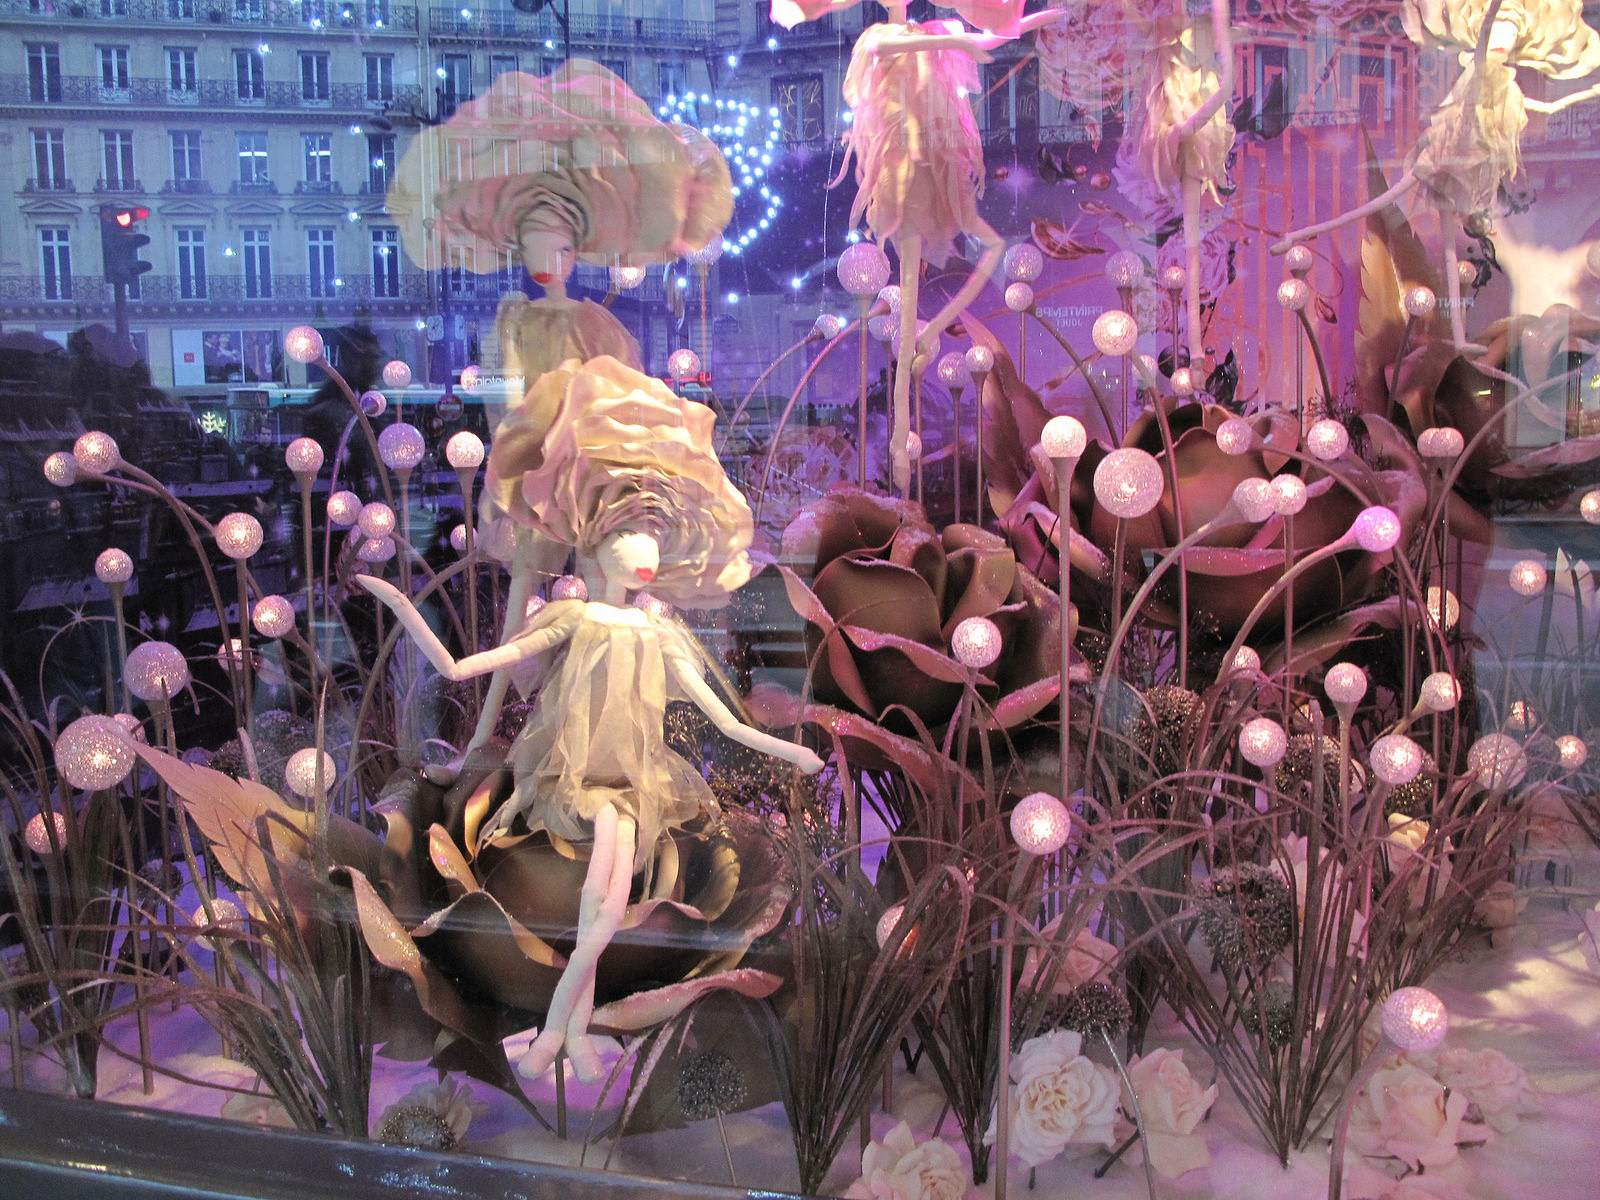 vitrines noel11 Christmas window displays in Paris